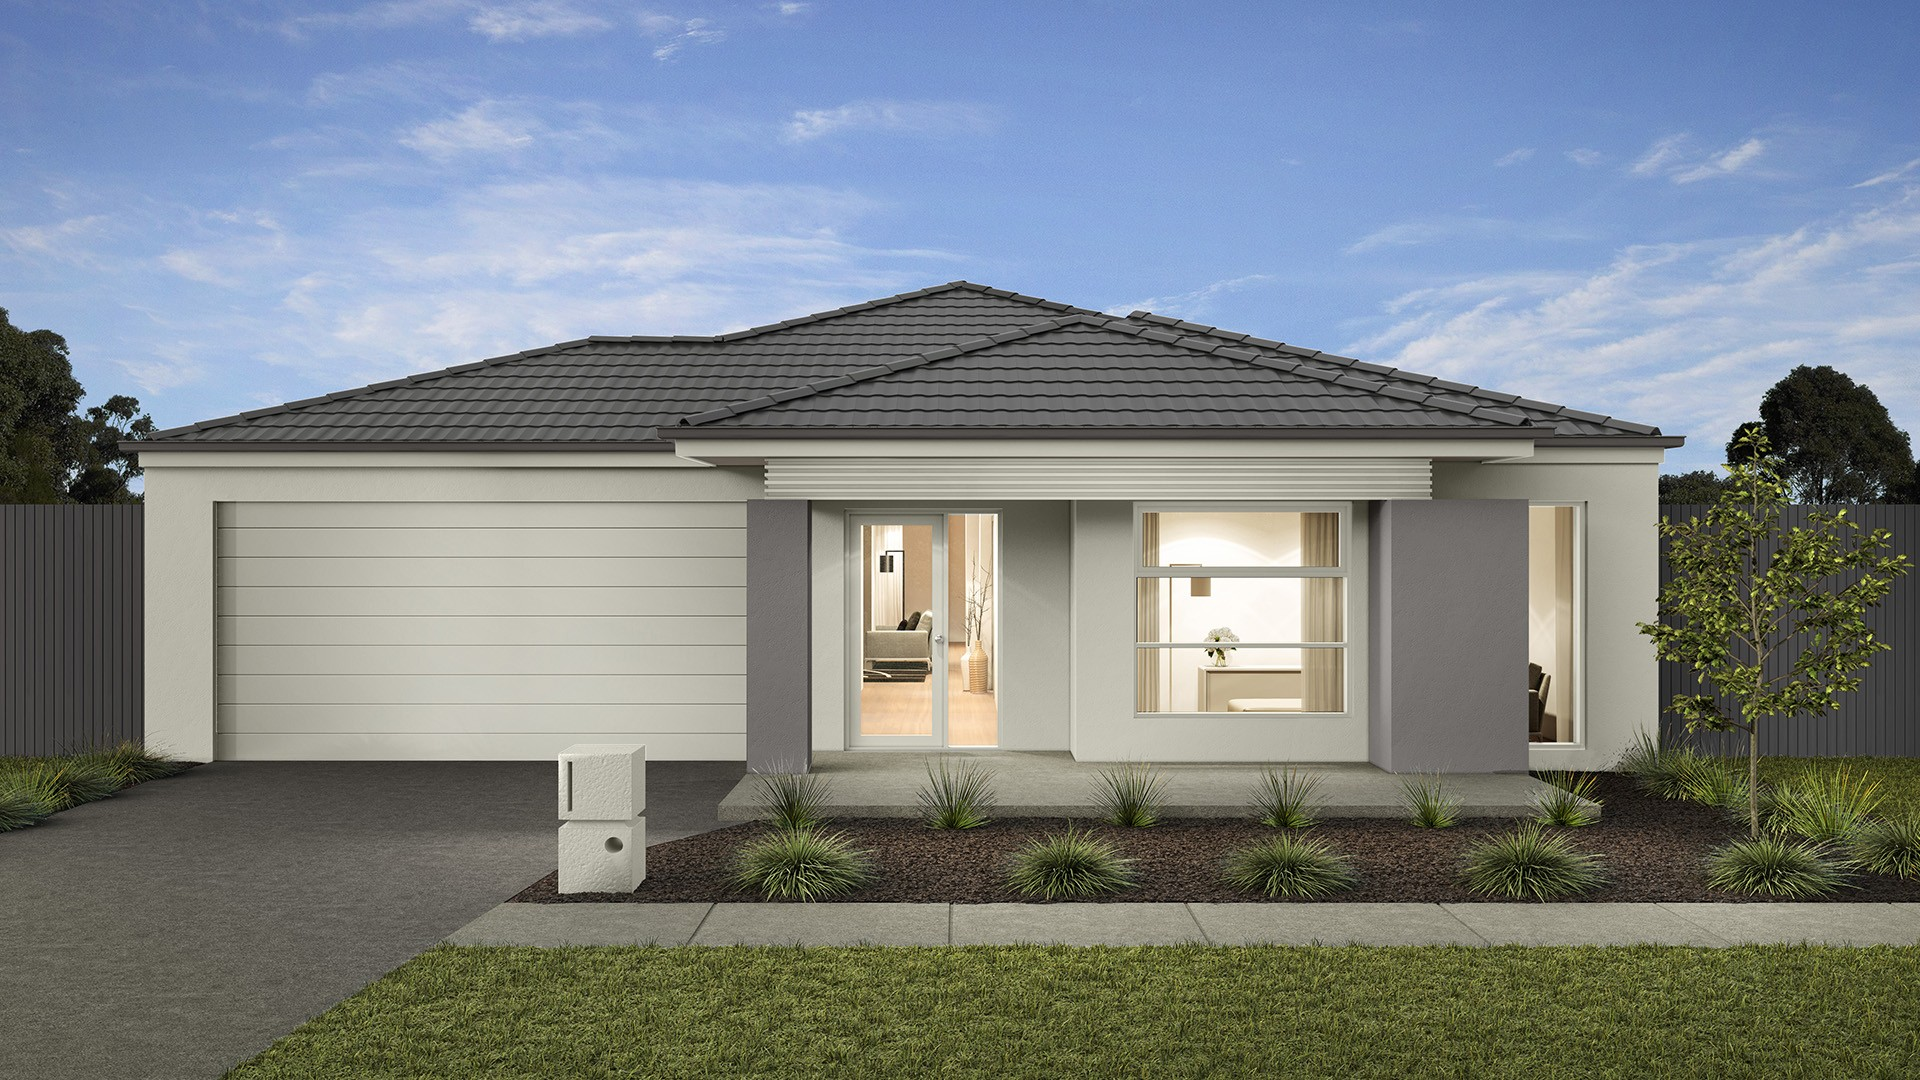 EASYLIVING LISMORE HEBEL NAPLES 14 Exterior Image 2